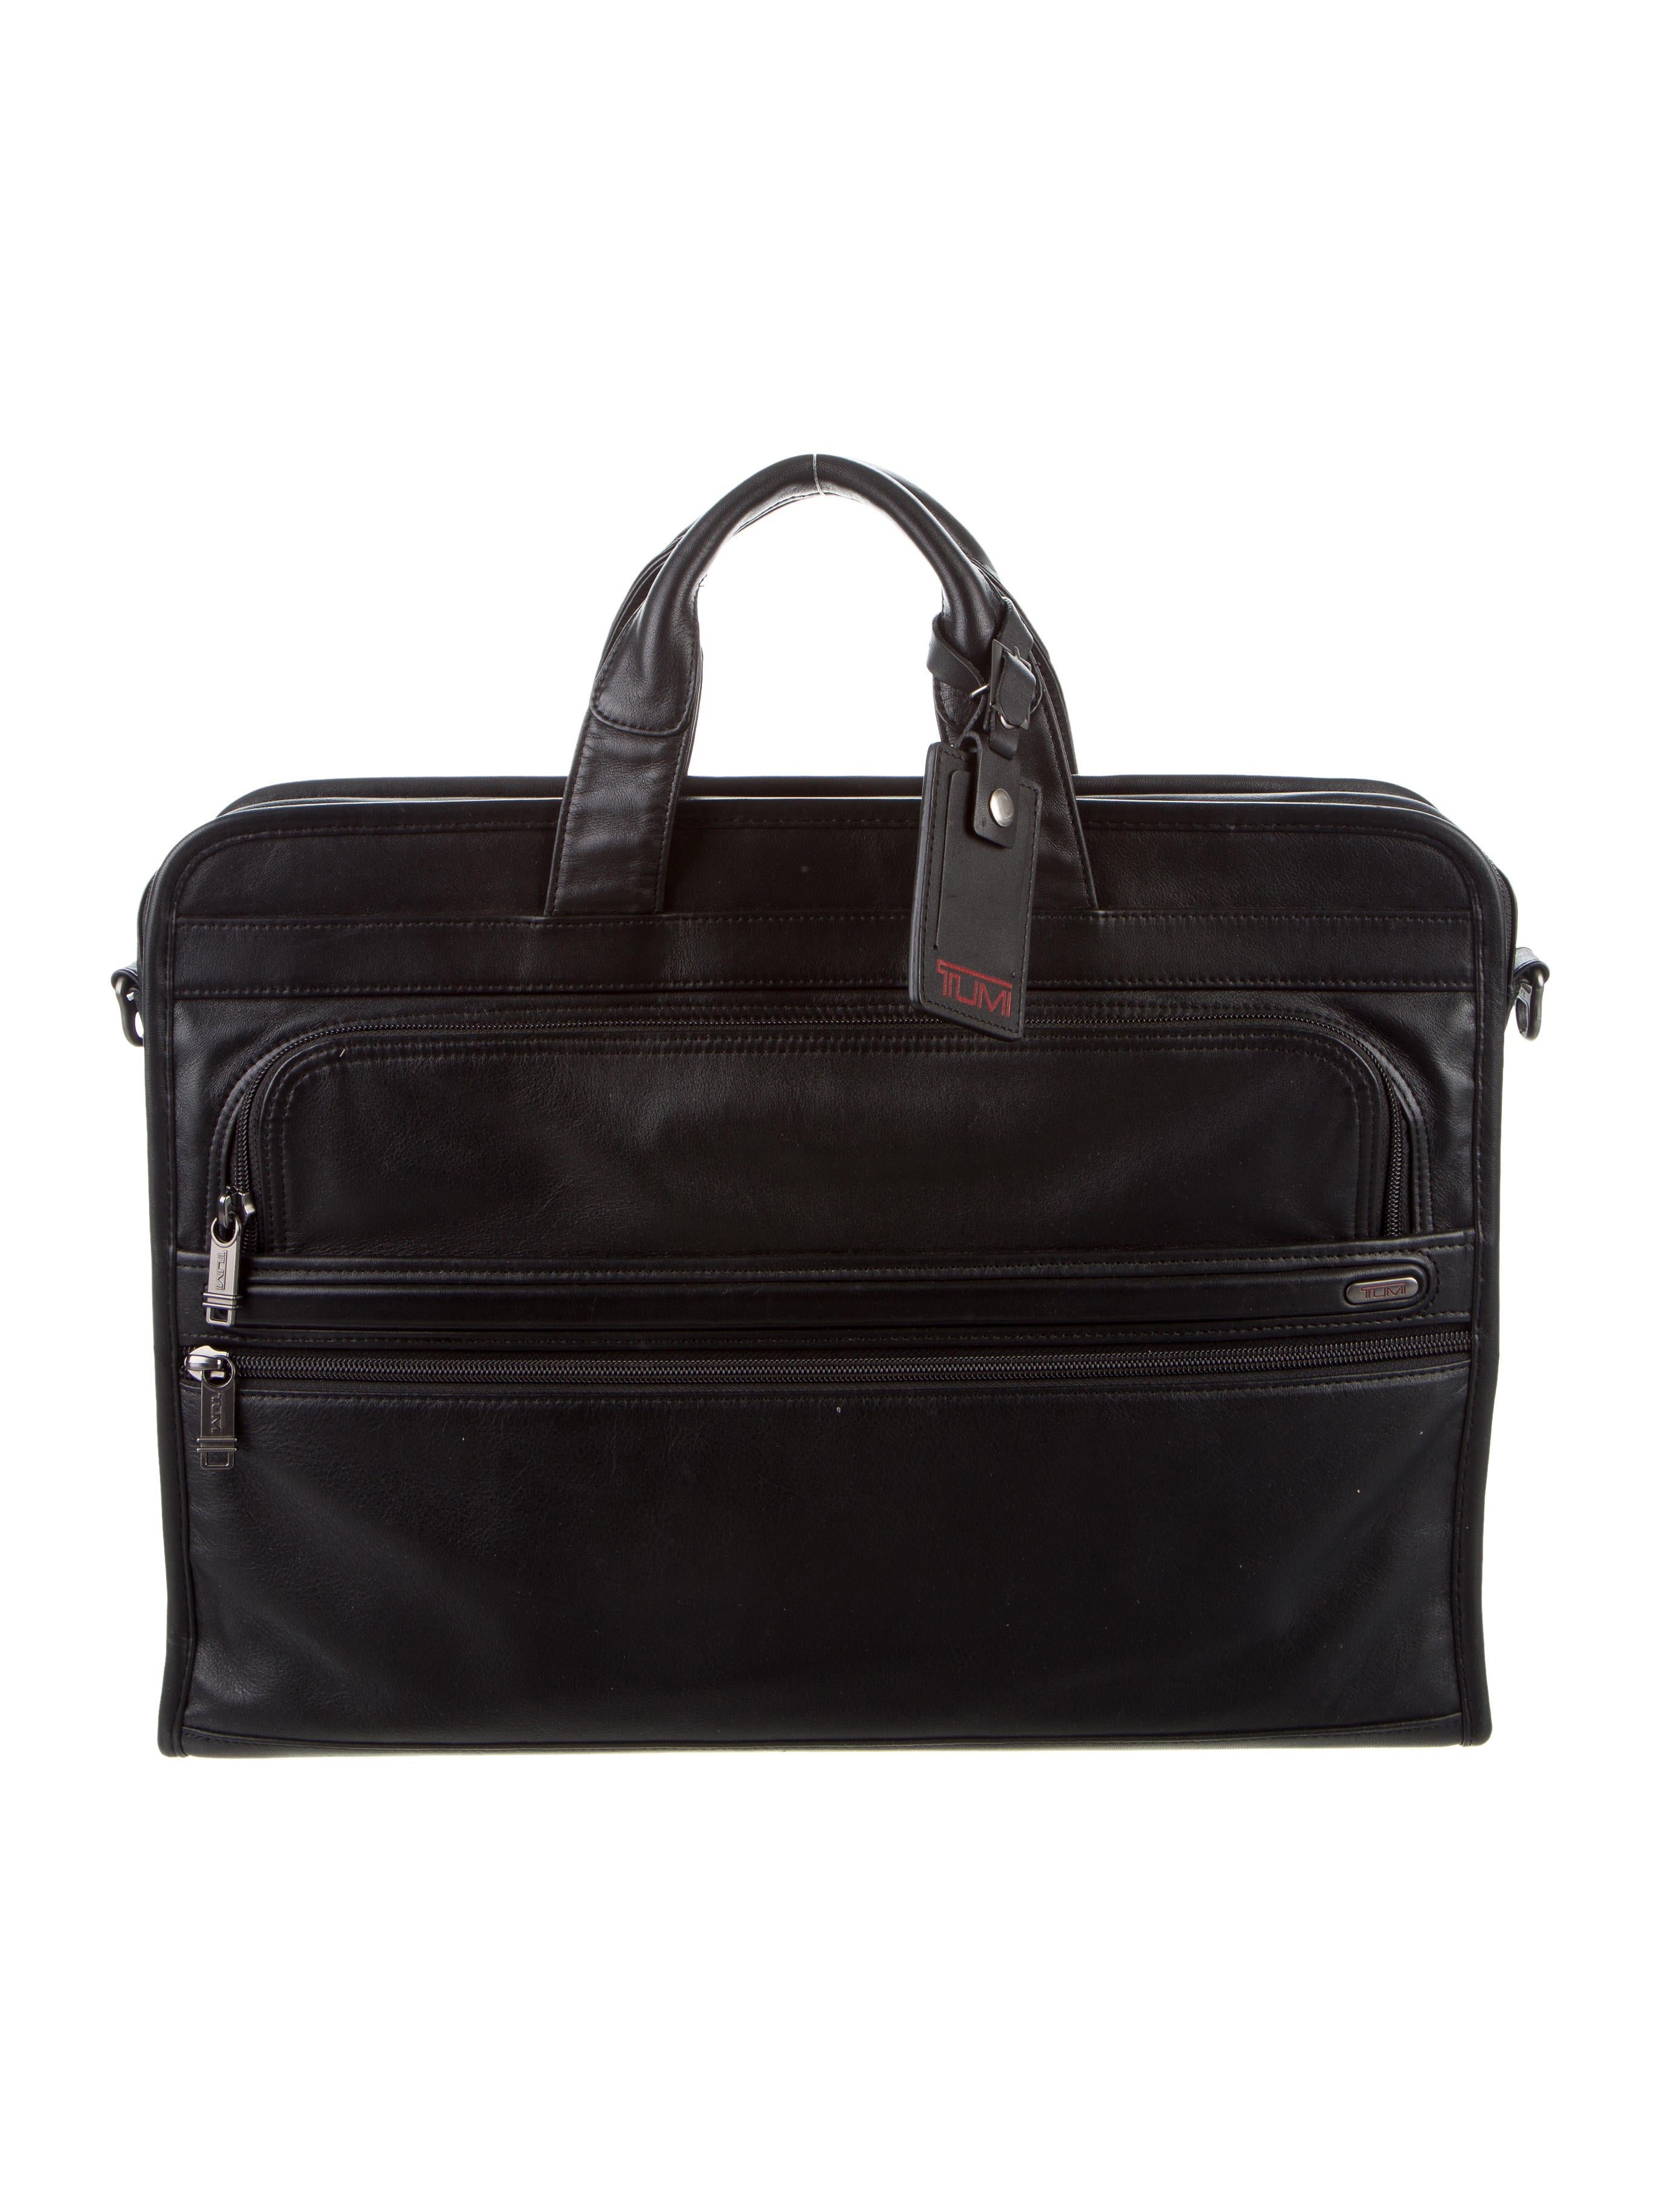 Visit Tumi for savings on business and travel luggage, fine wallets, handbags and more quality products. Shop online and take advantage of their limited 20% off deals on selected merchandise. While shopping, you can take an additional 40% on leather bags, wallets and more leather accessories.